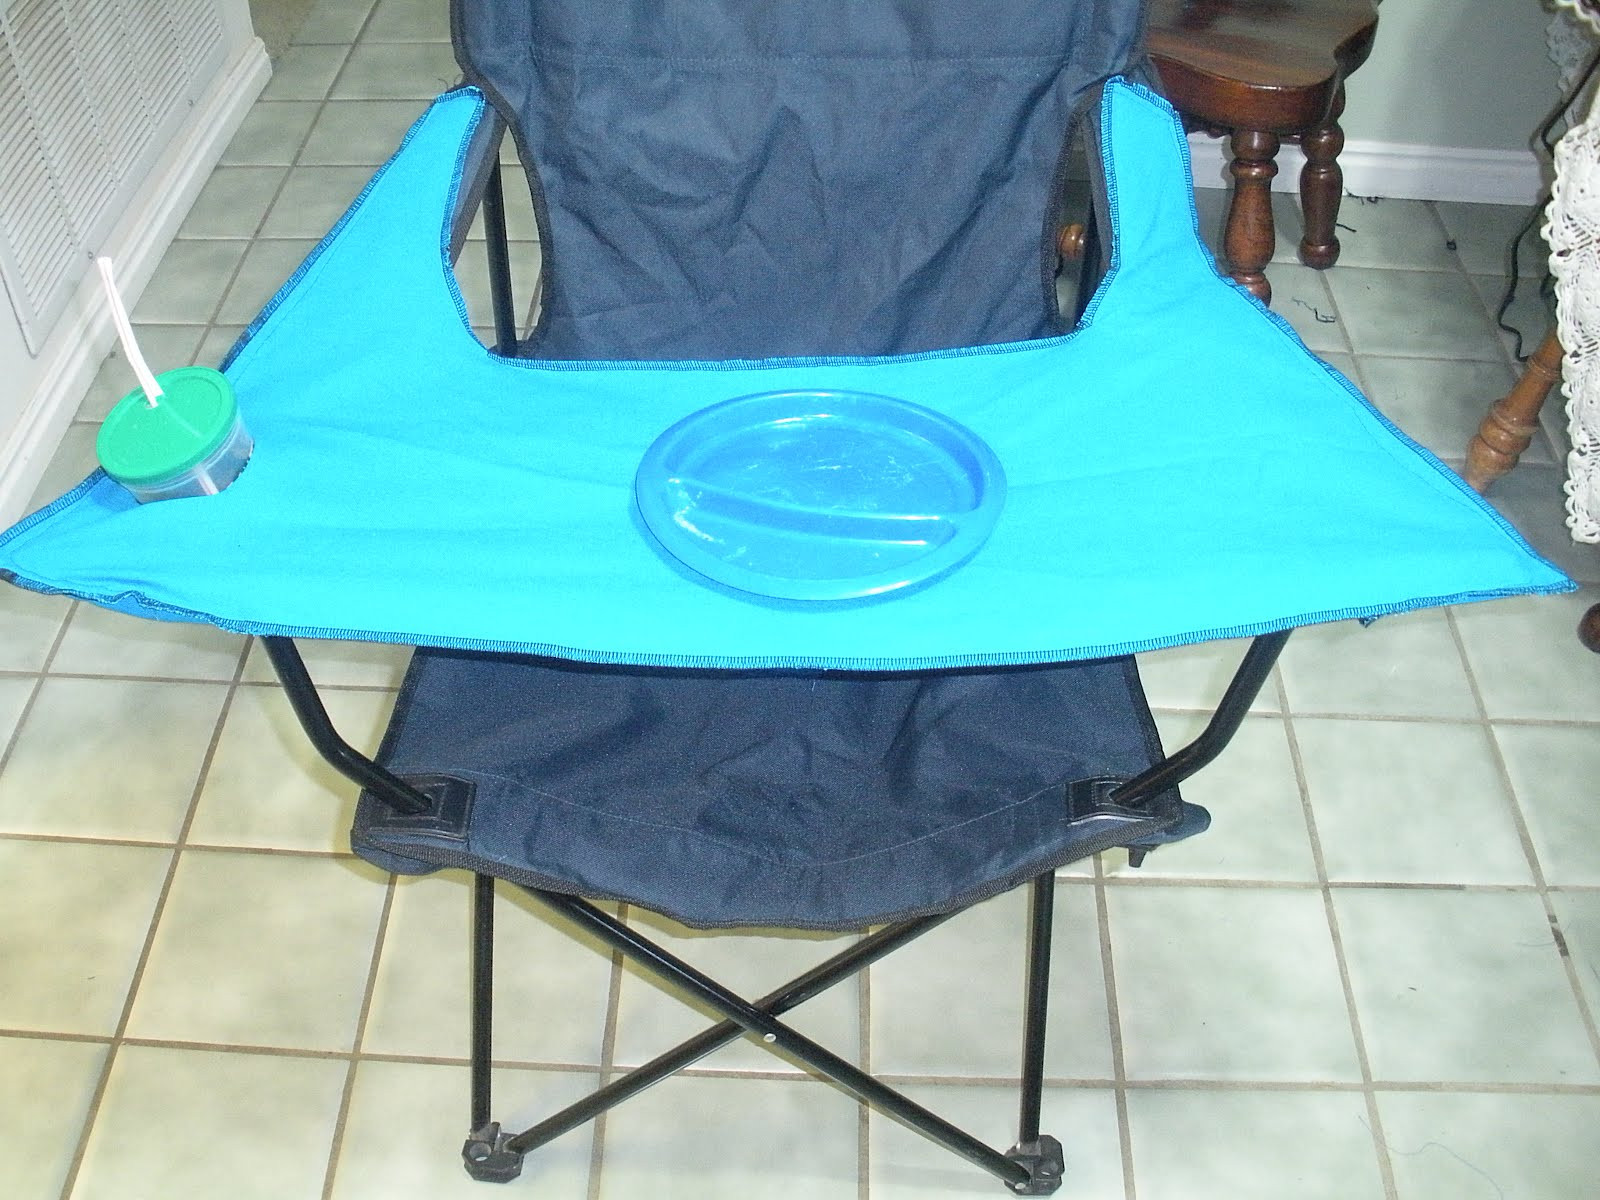 Best ideas about DIY Camping Chairs . Save or Pin Life with the Anderson DIY Camping high chair Now.